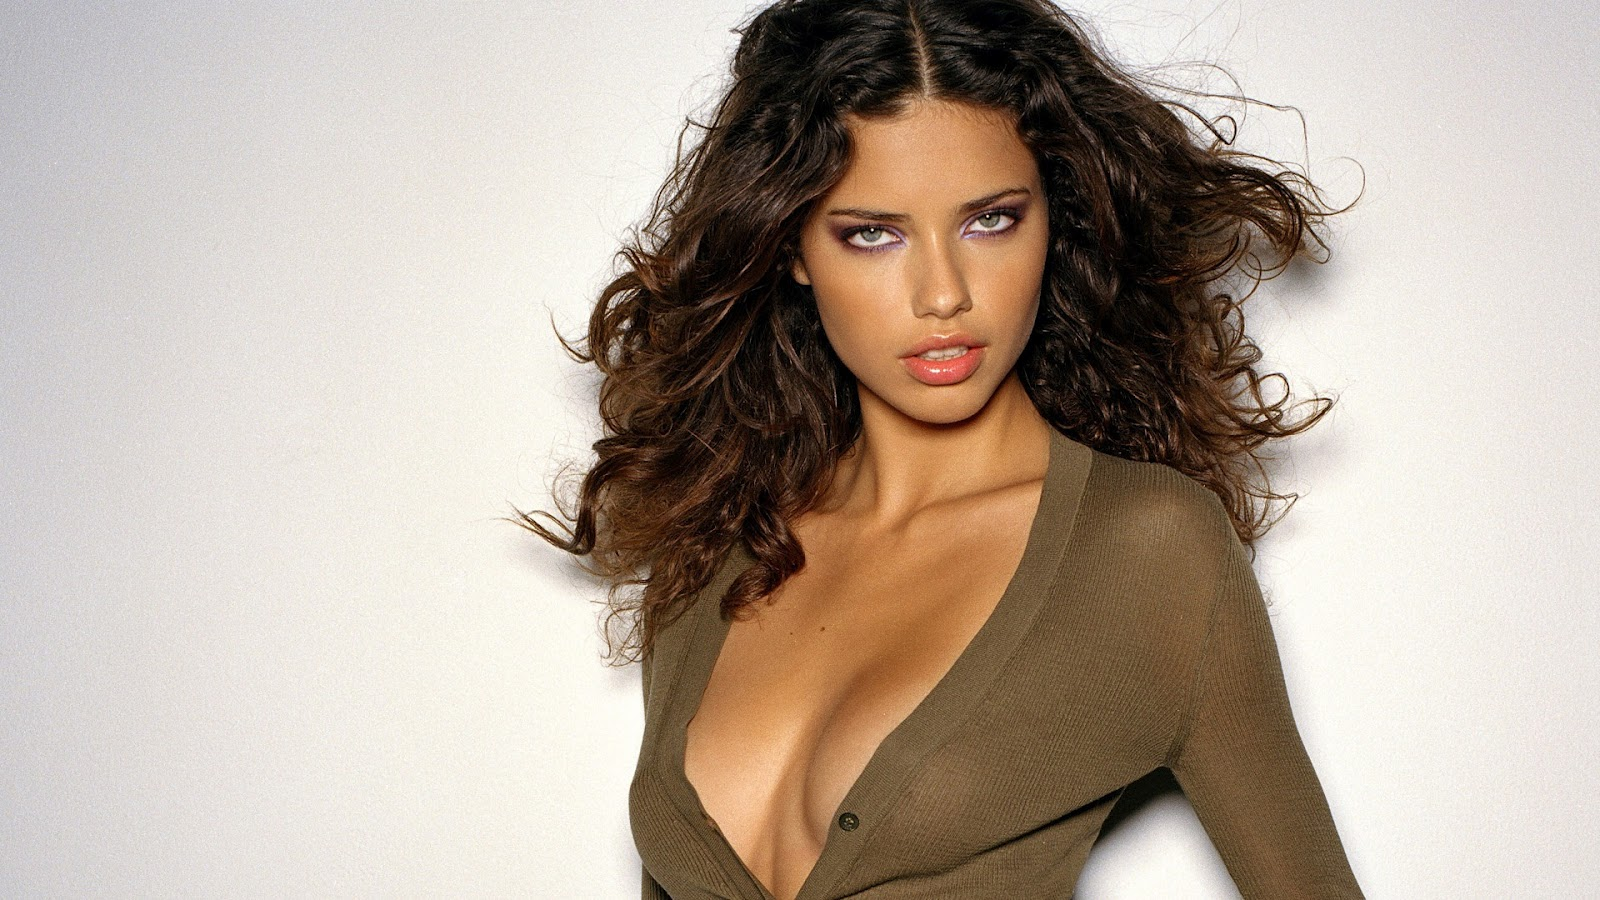 adriana lima photos - photo #5